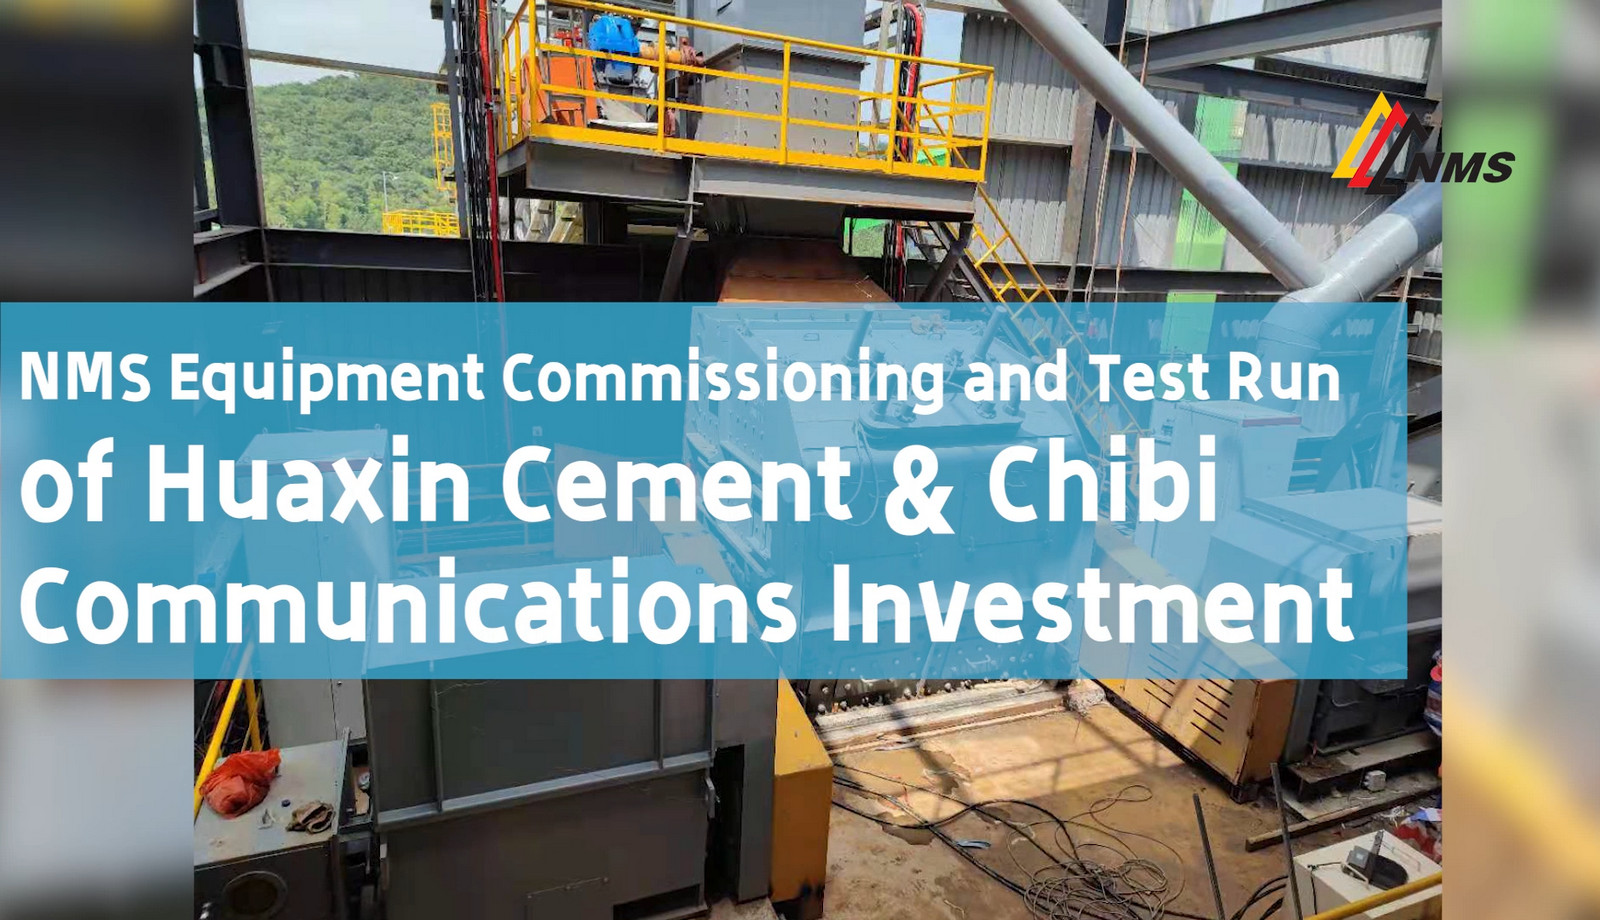 NMS Equipment Commissioning and Test Run of Huaxin Cement & Chibi Communications Investment